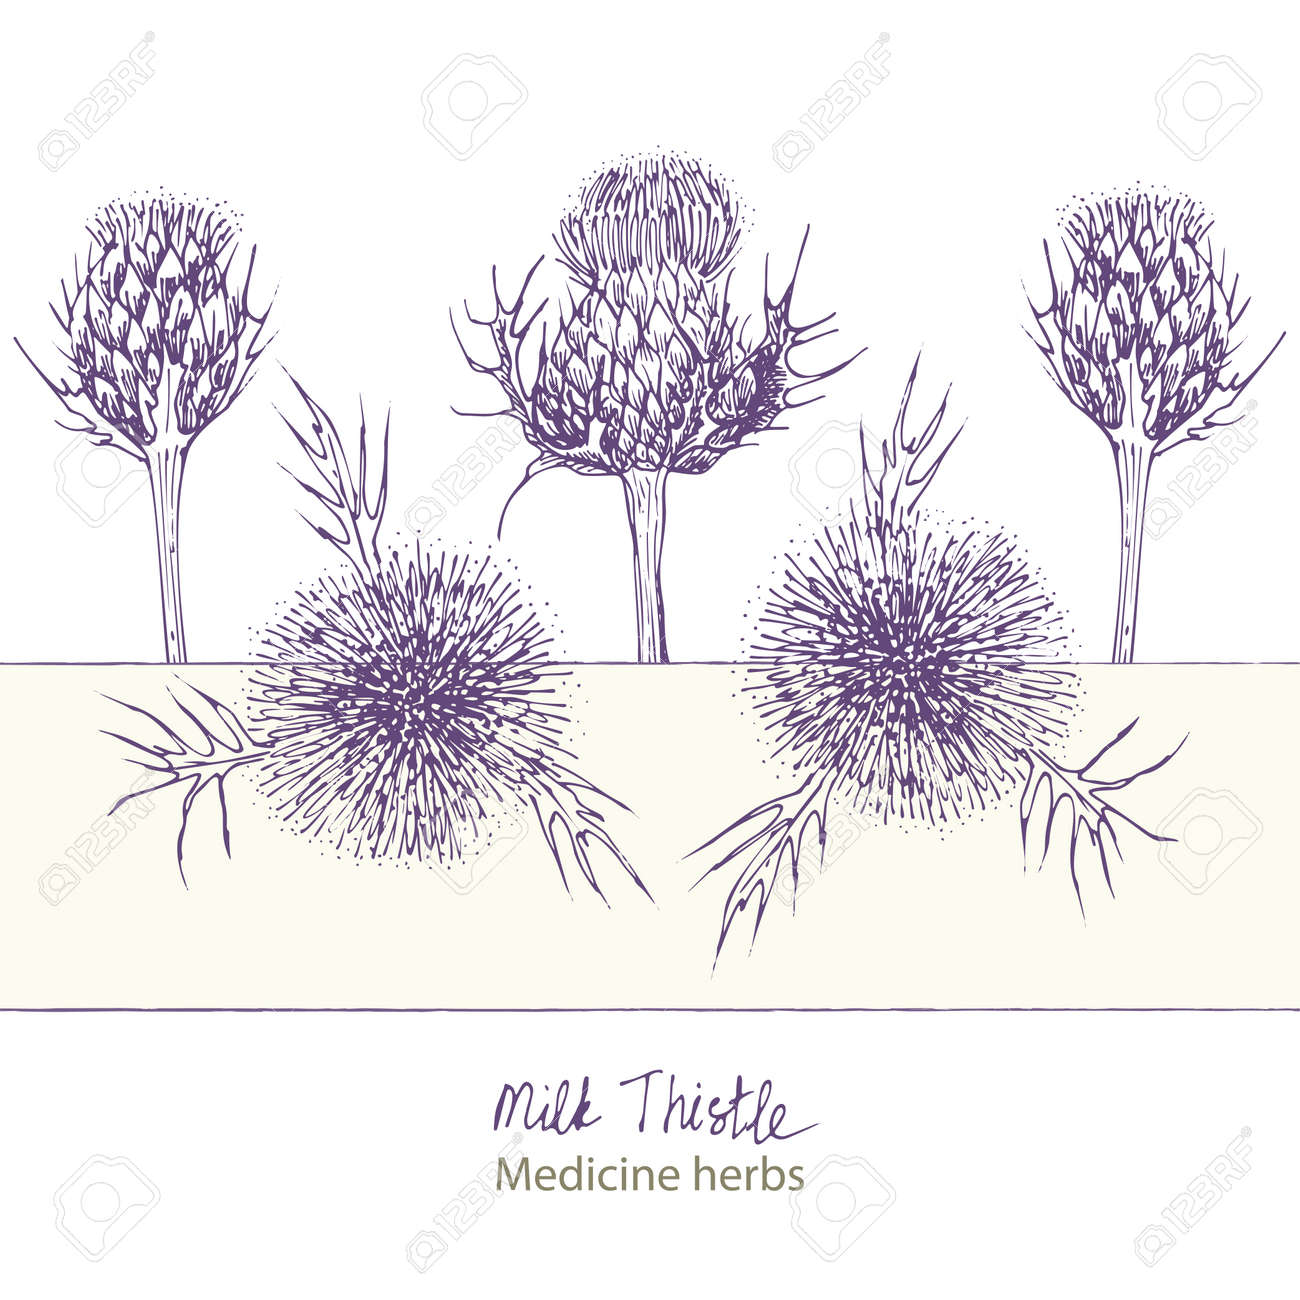 Set hand drawn of Milk Thistle, lives and flowers in black color isolated on white background. Retro vintage graphic design. Botanical sketch drawing, engraving style. Vector. - 162597486